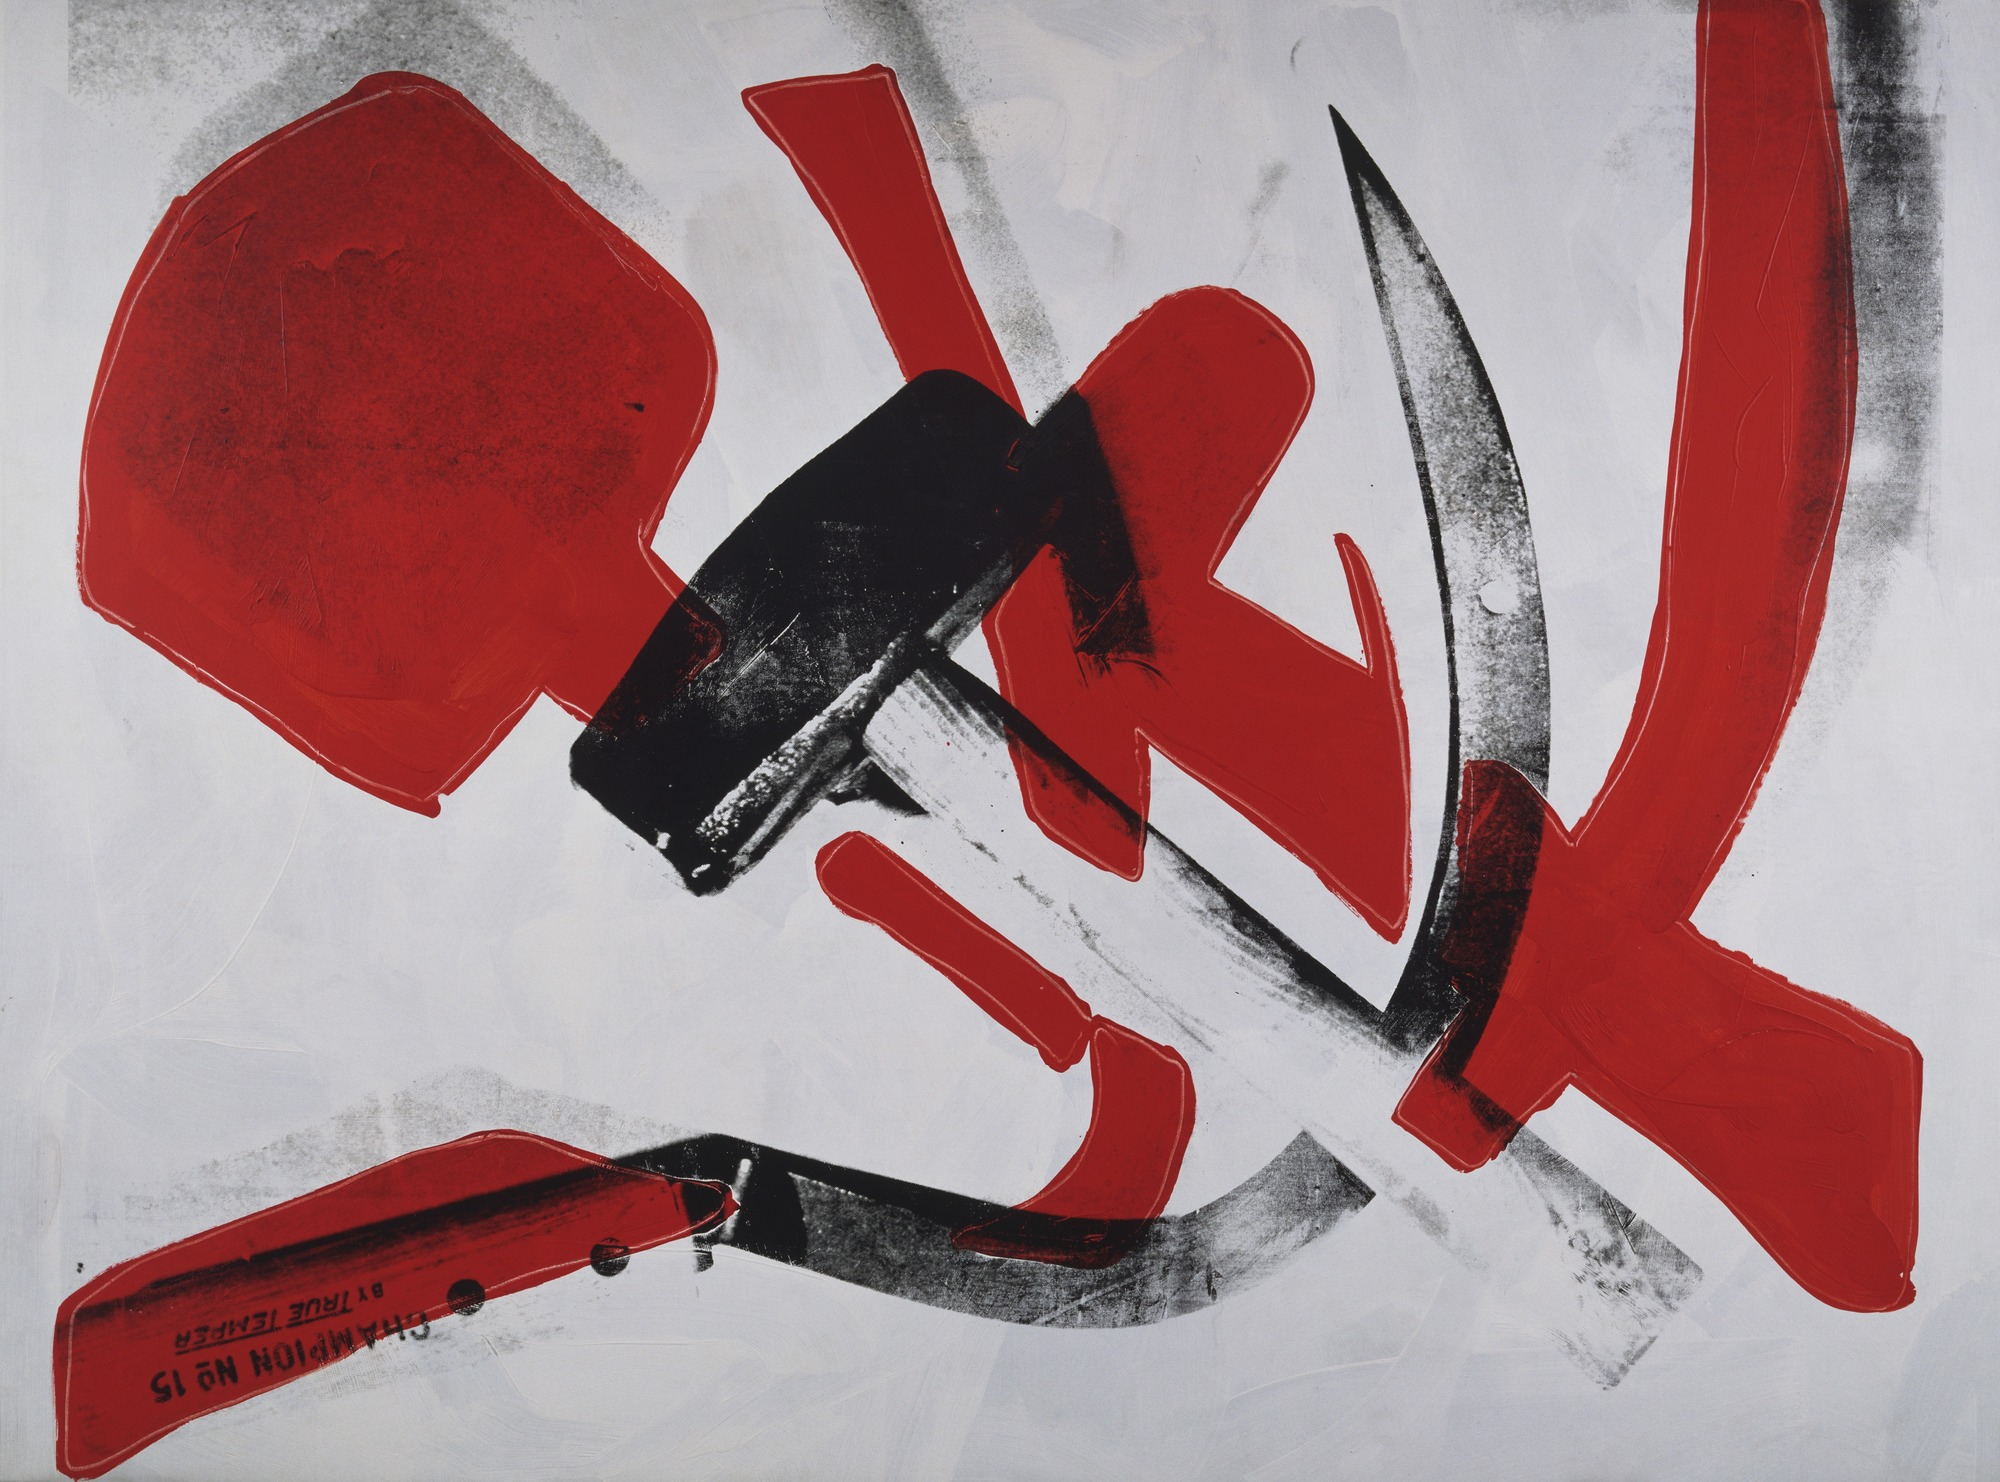 Andy Warhol, Hammer and Sickle (1976; New York, MoMA)